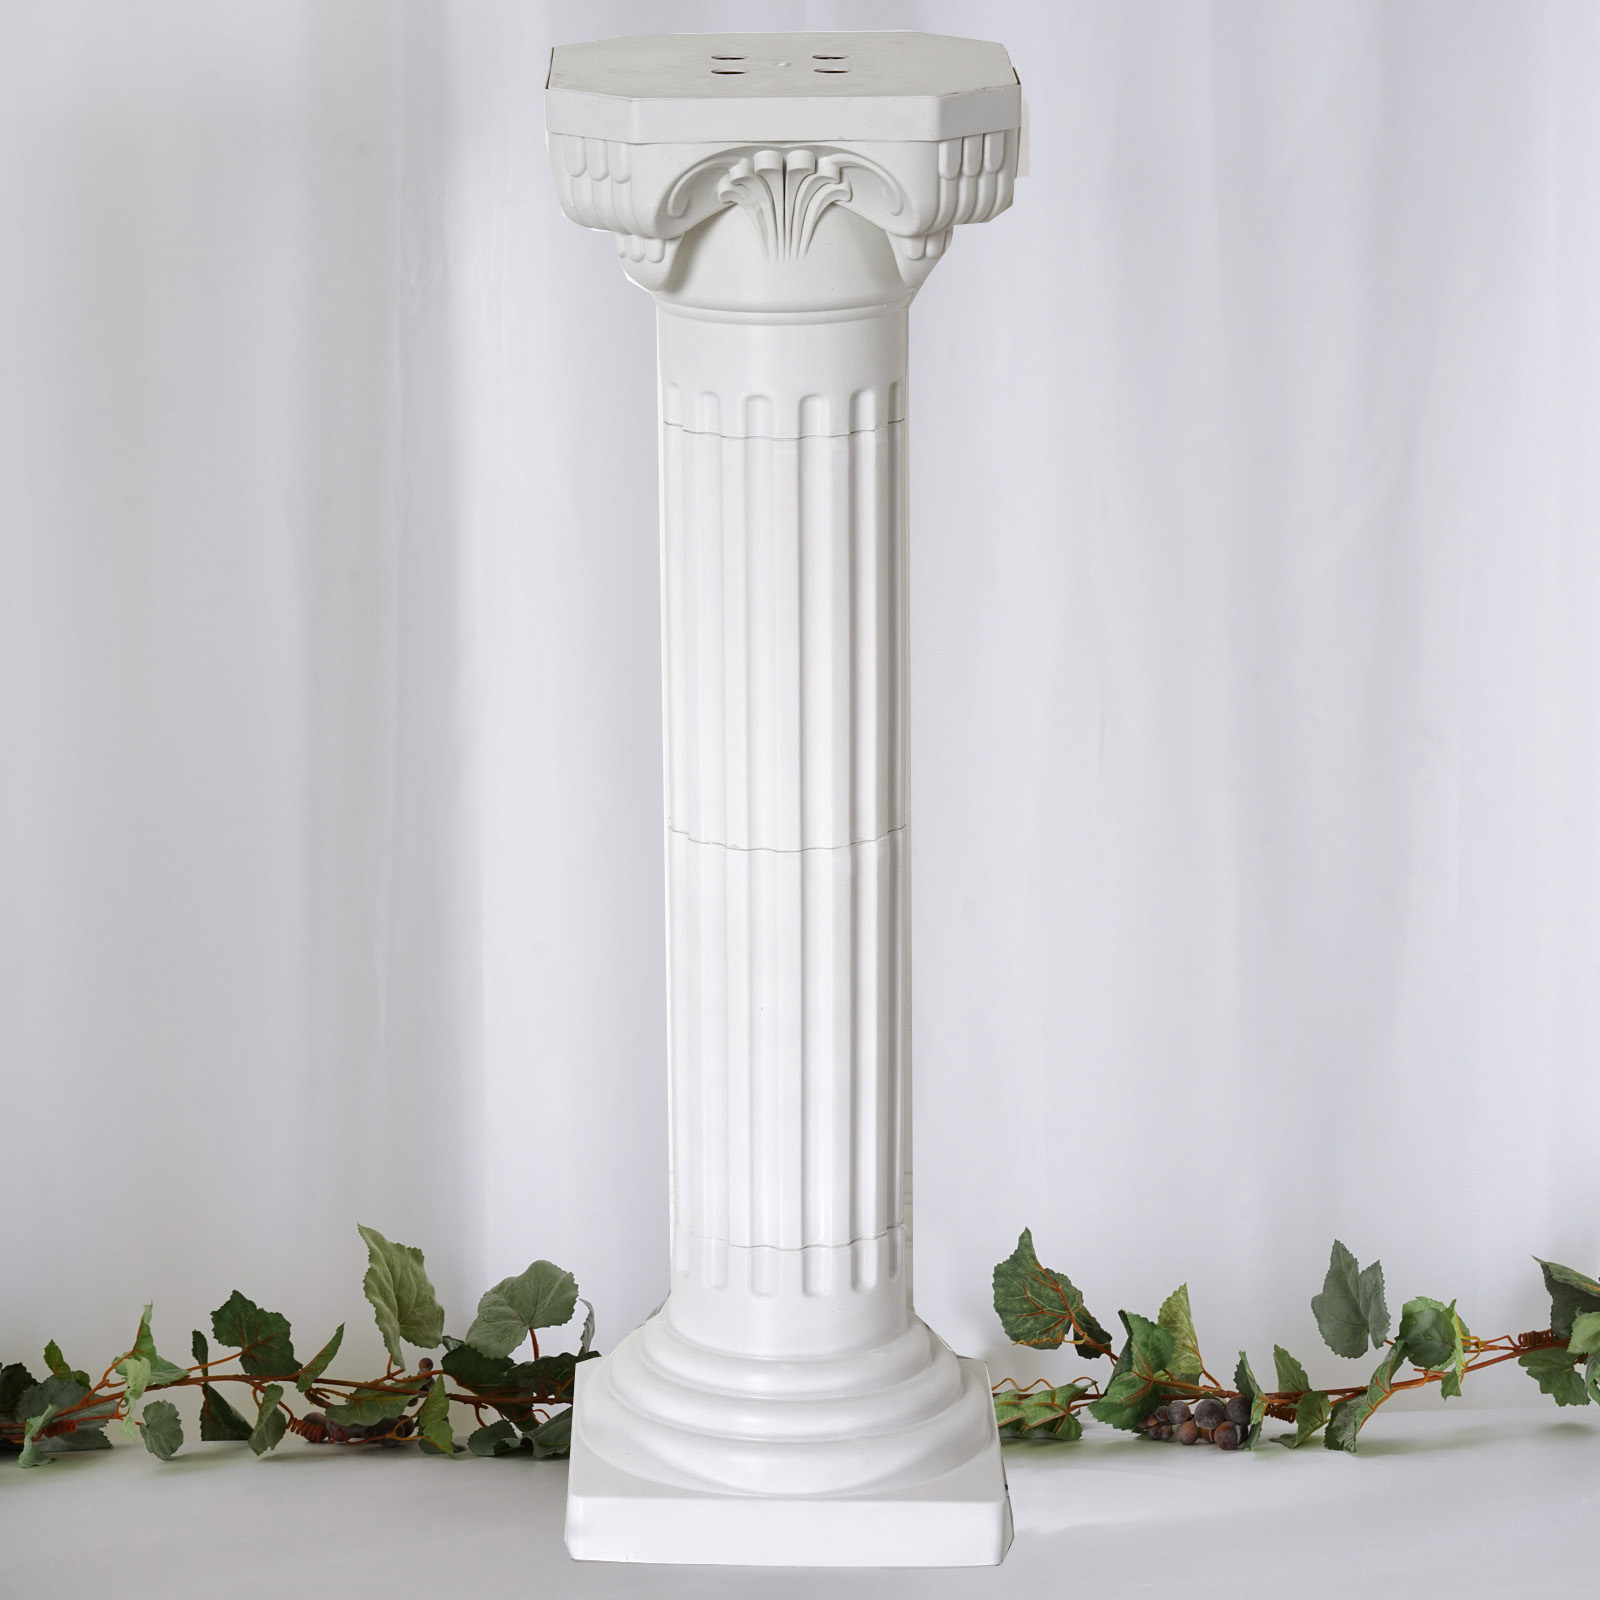 4 pillars set roman decorative columns pvc pillars 36 for Decorative columns